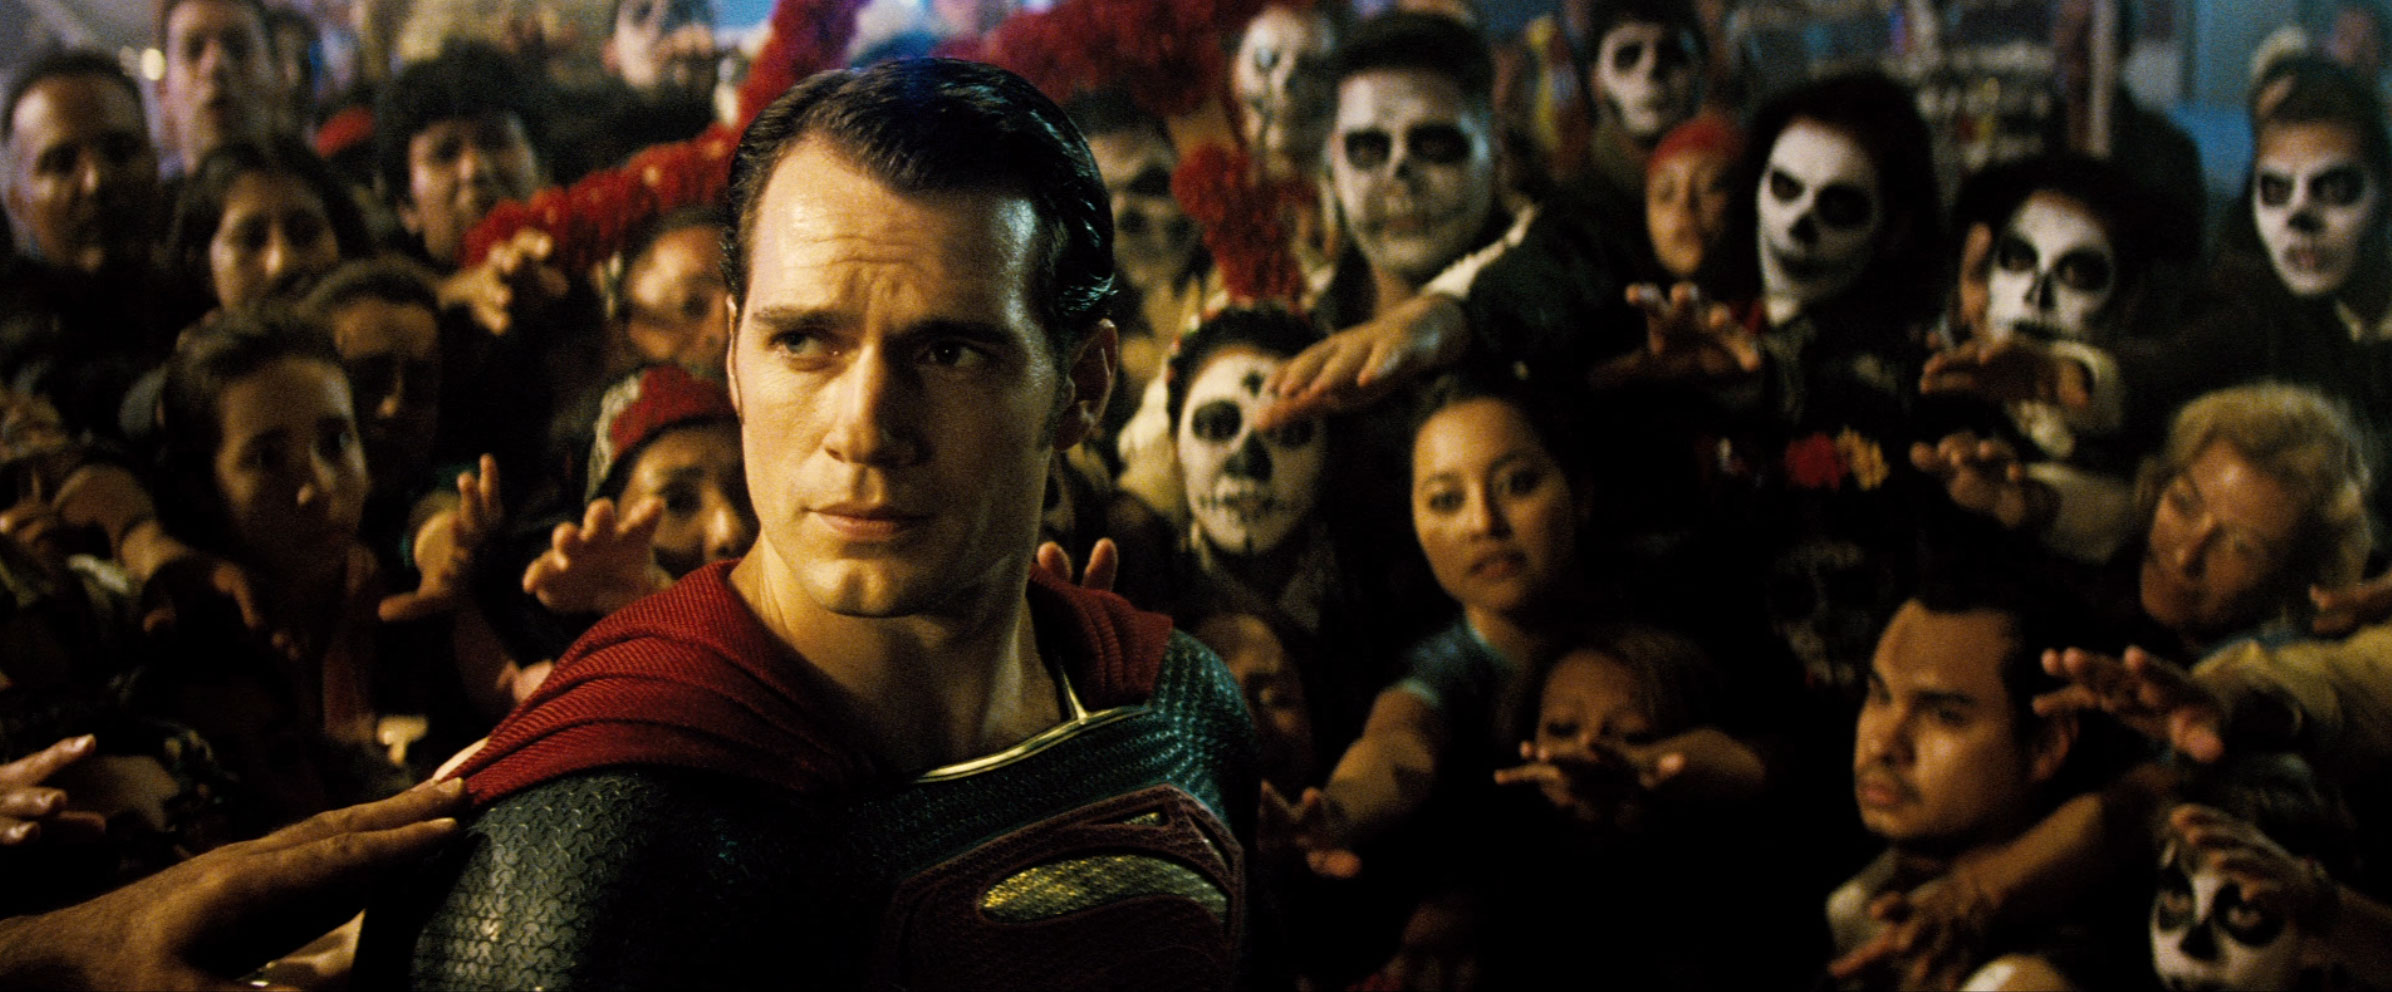 O Superman de Zack Snyder: Messias ou Anticristo?